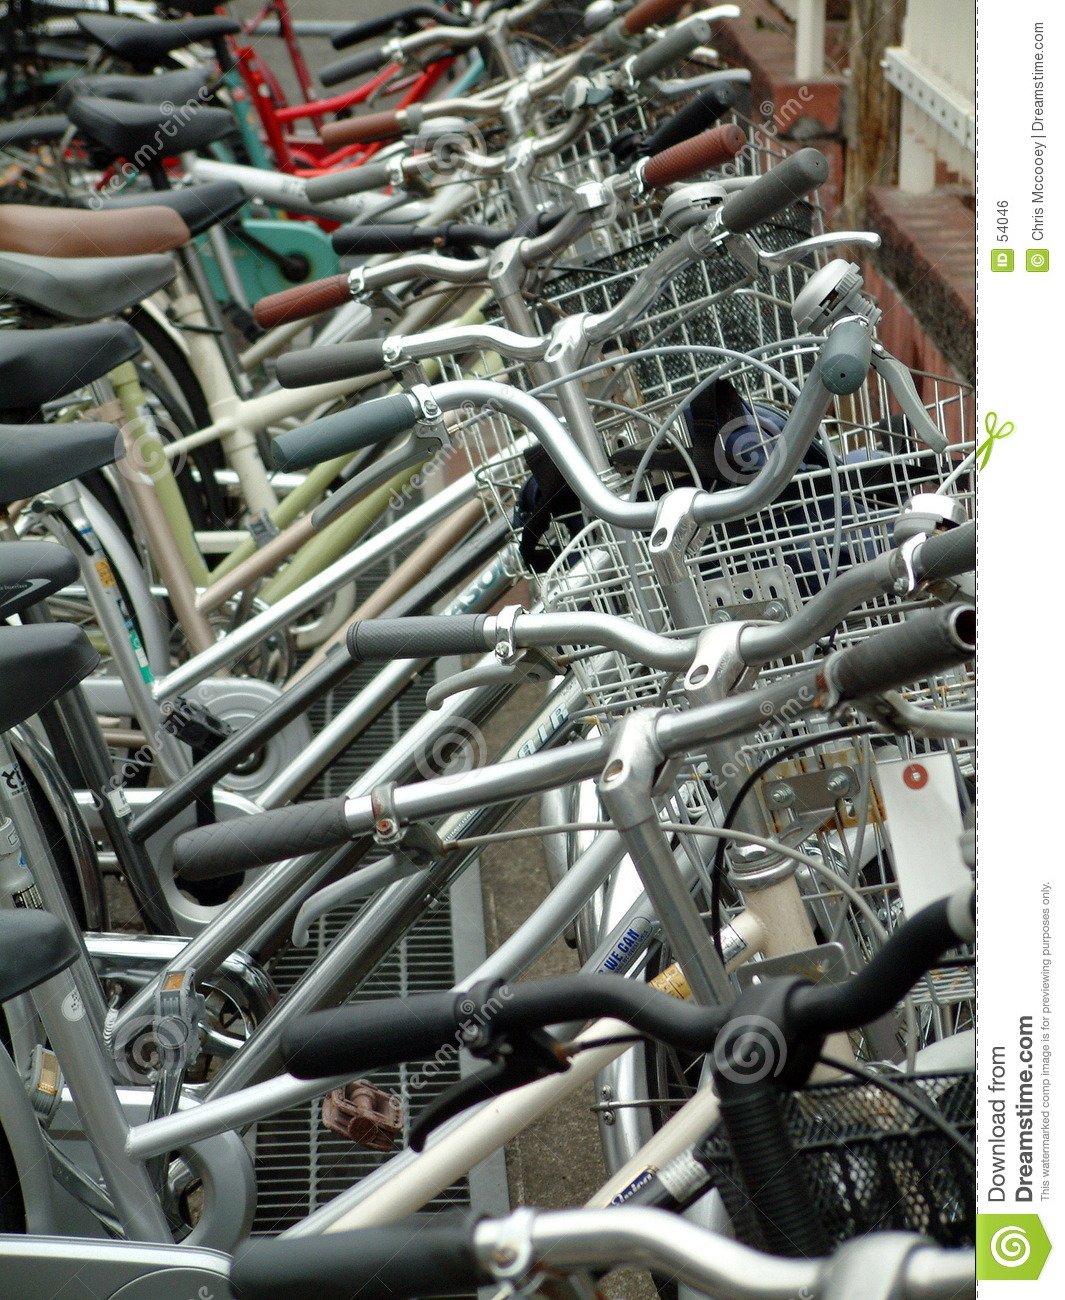 Parking de bicyclette.